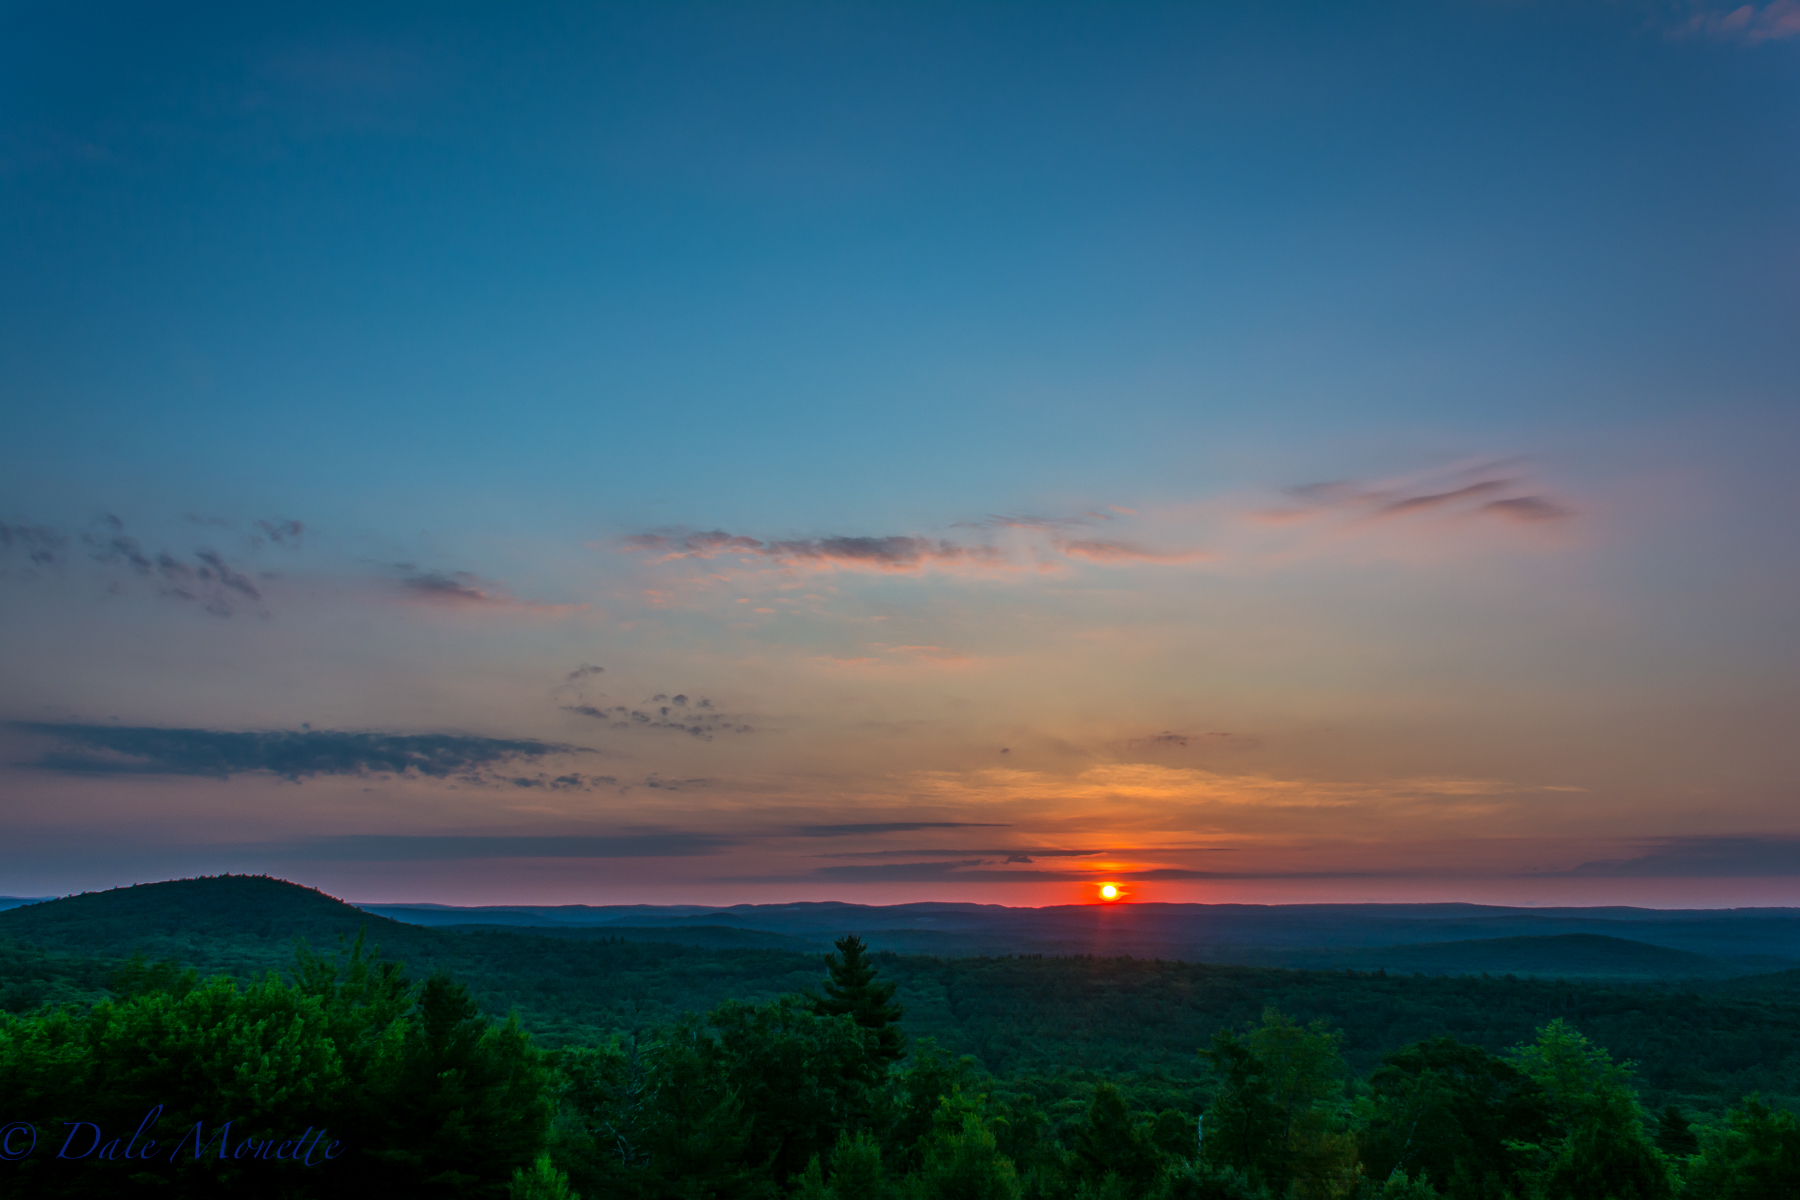 Sunrise on a hot summers morning. New Salem MA looking over the northern Quabbin and the southern part of Athol, MA. 7/12/16